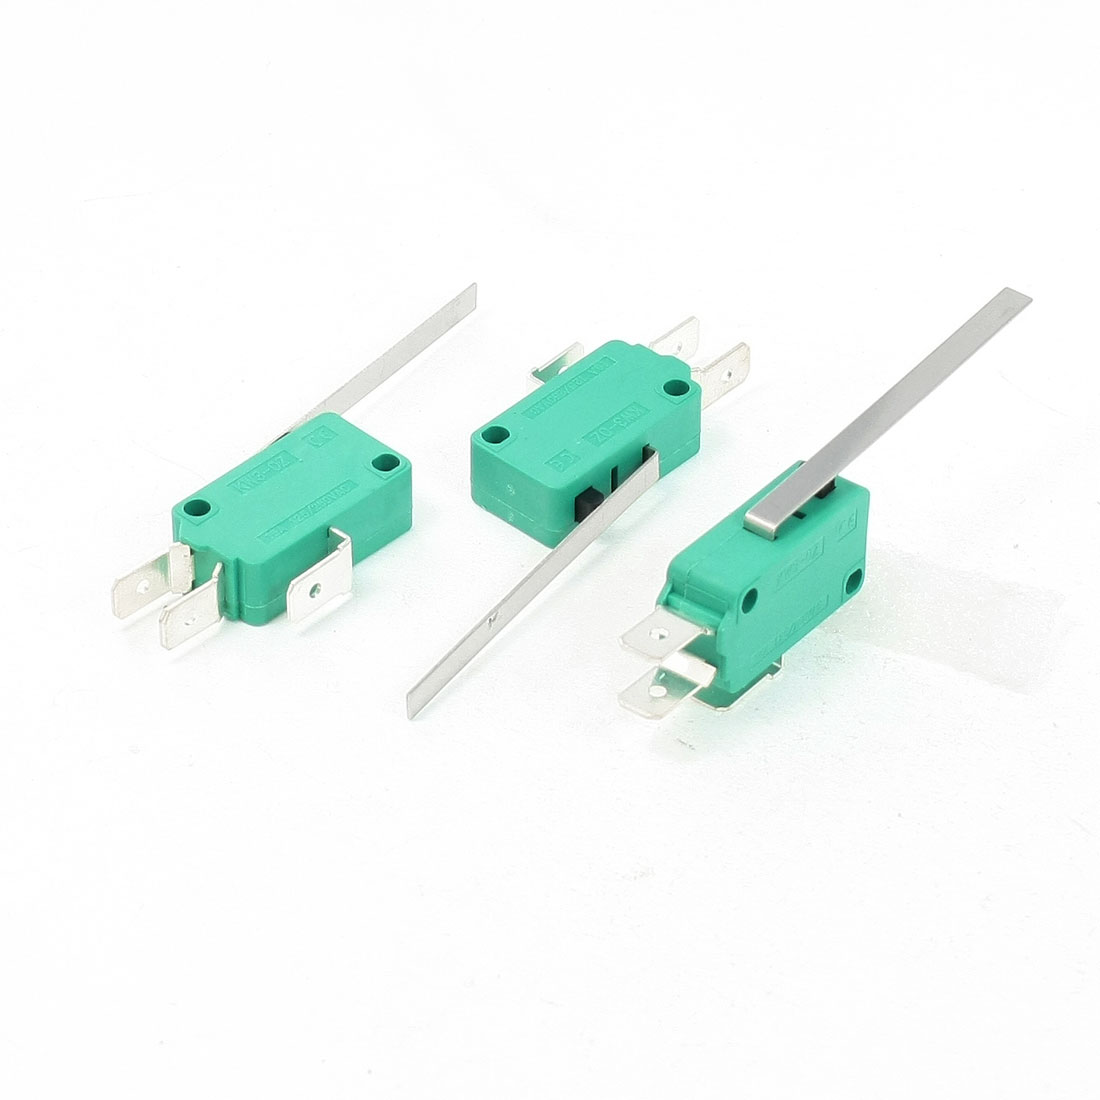 3 Pcs AC 250V 16A SPDT Long Straight Hinge Lever Miniature Micro Switch Green